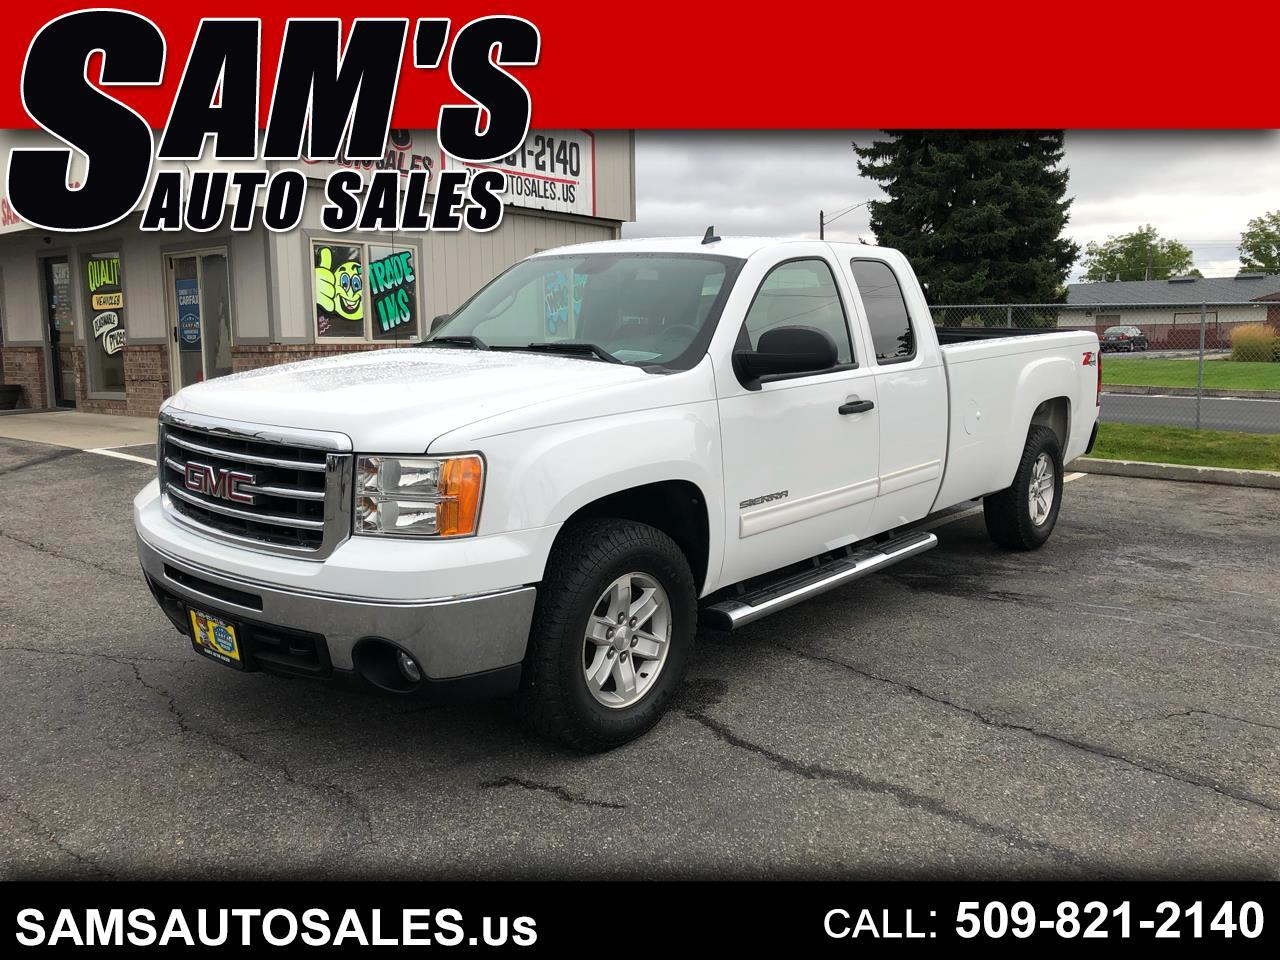 2012 GMC Sierra 1500 SLE Ext. Cab Long Bed 4WD